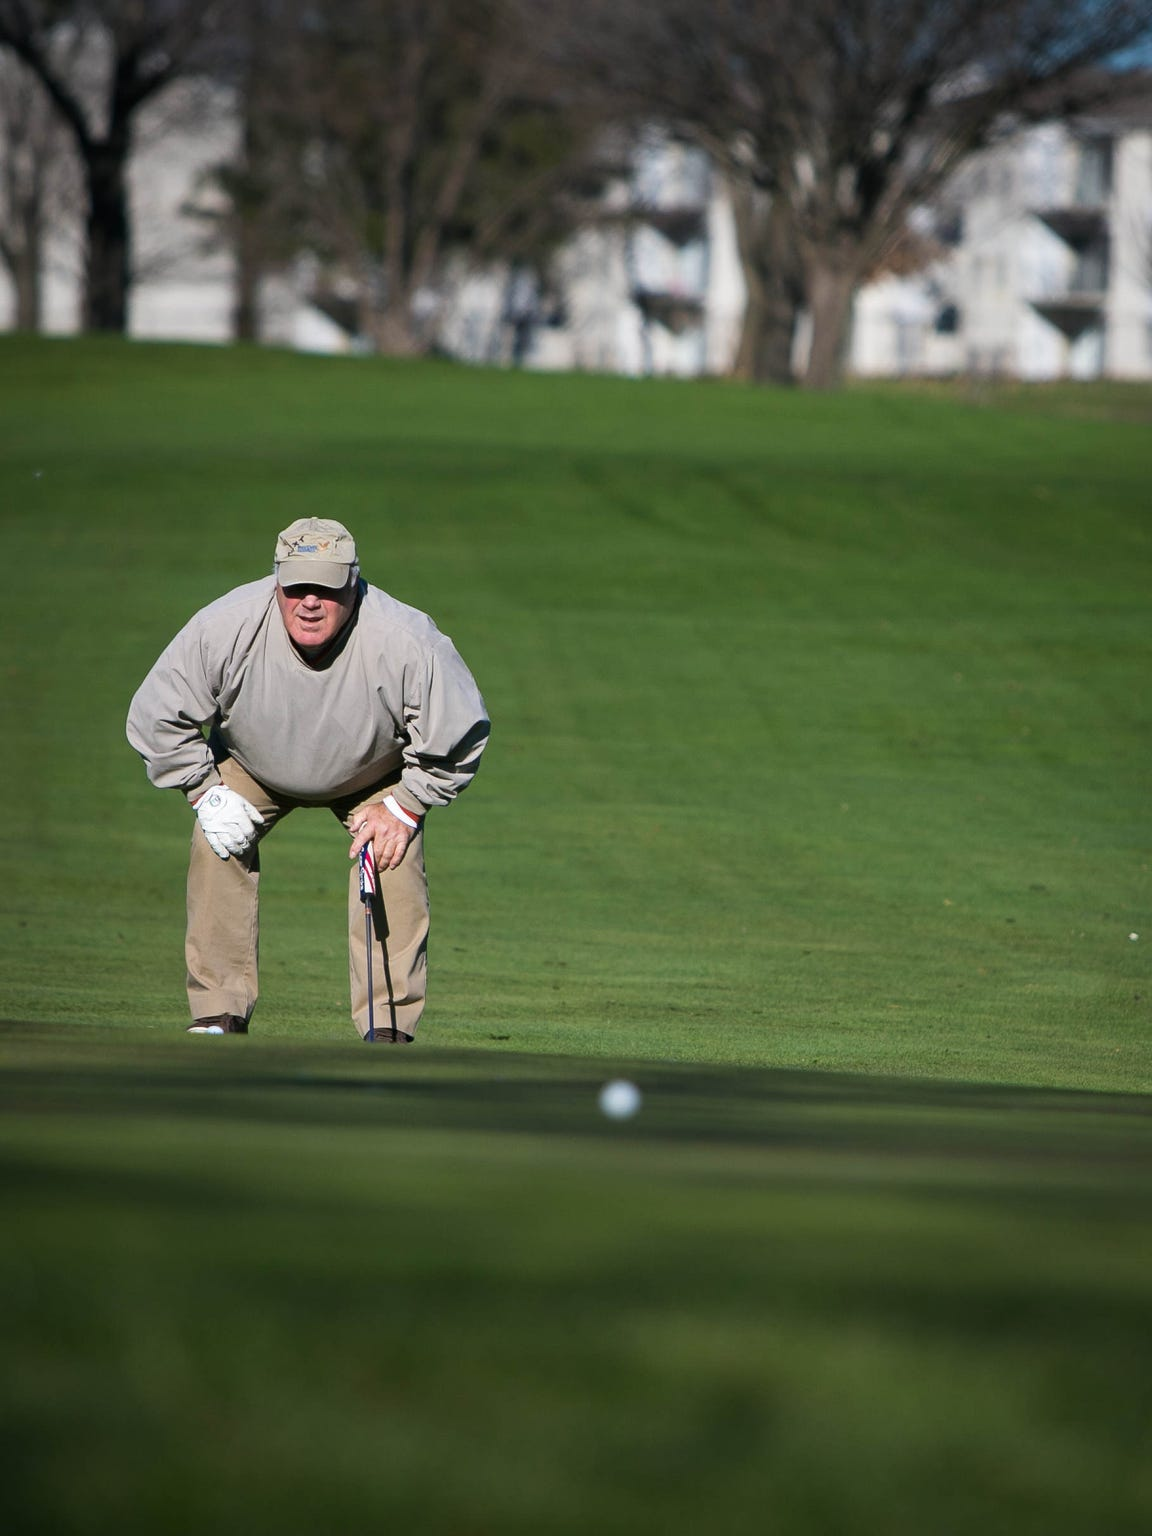 Club member Fran Long checks his line at the putting green on the back nine at Cavaliers Country Club. The club is still taking members, but is the subject of a redevelopment proposal.